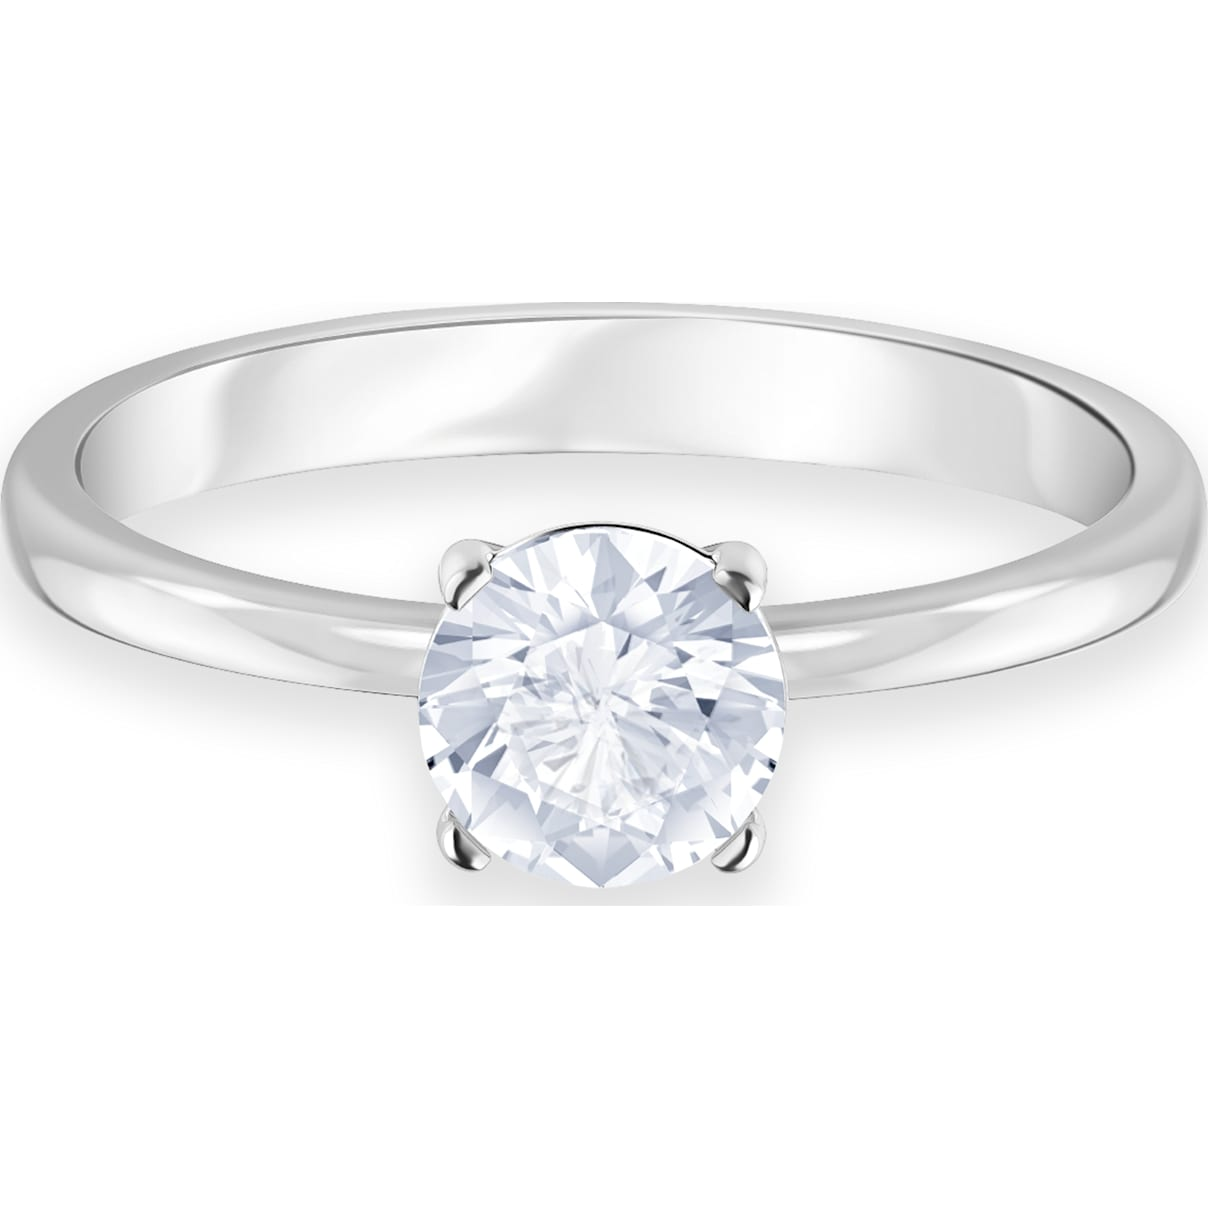 Swarovski Attract Ring, White, Rhodium plated